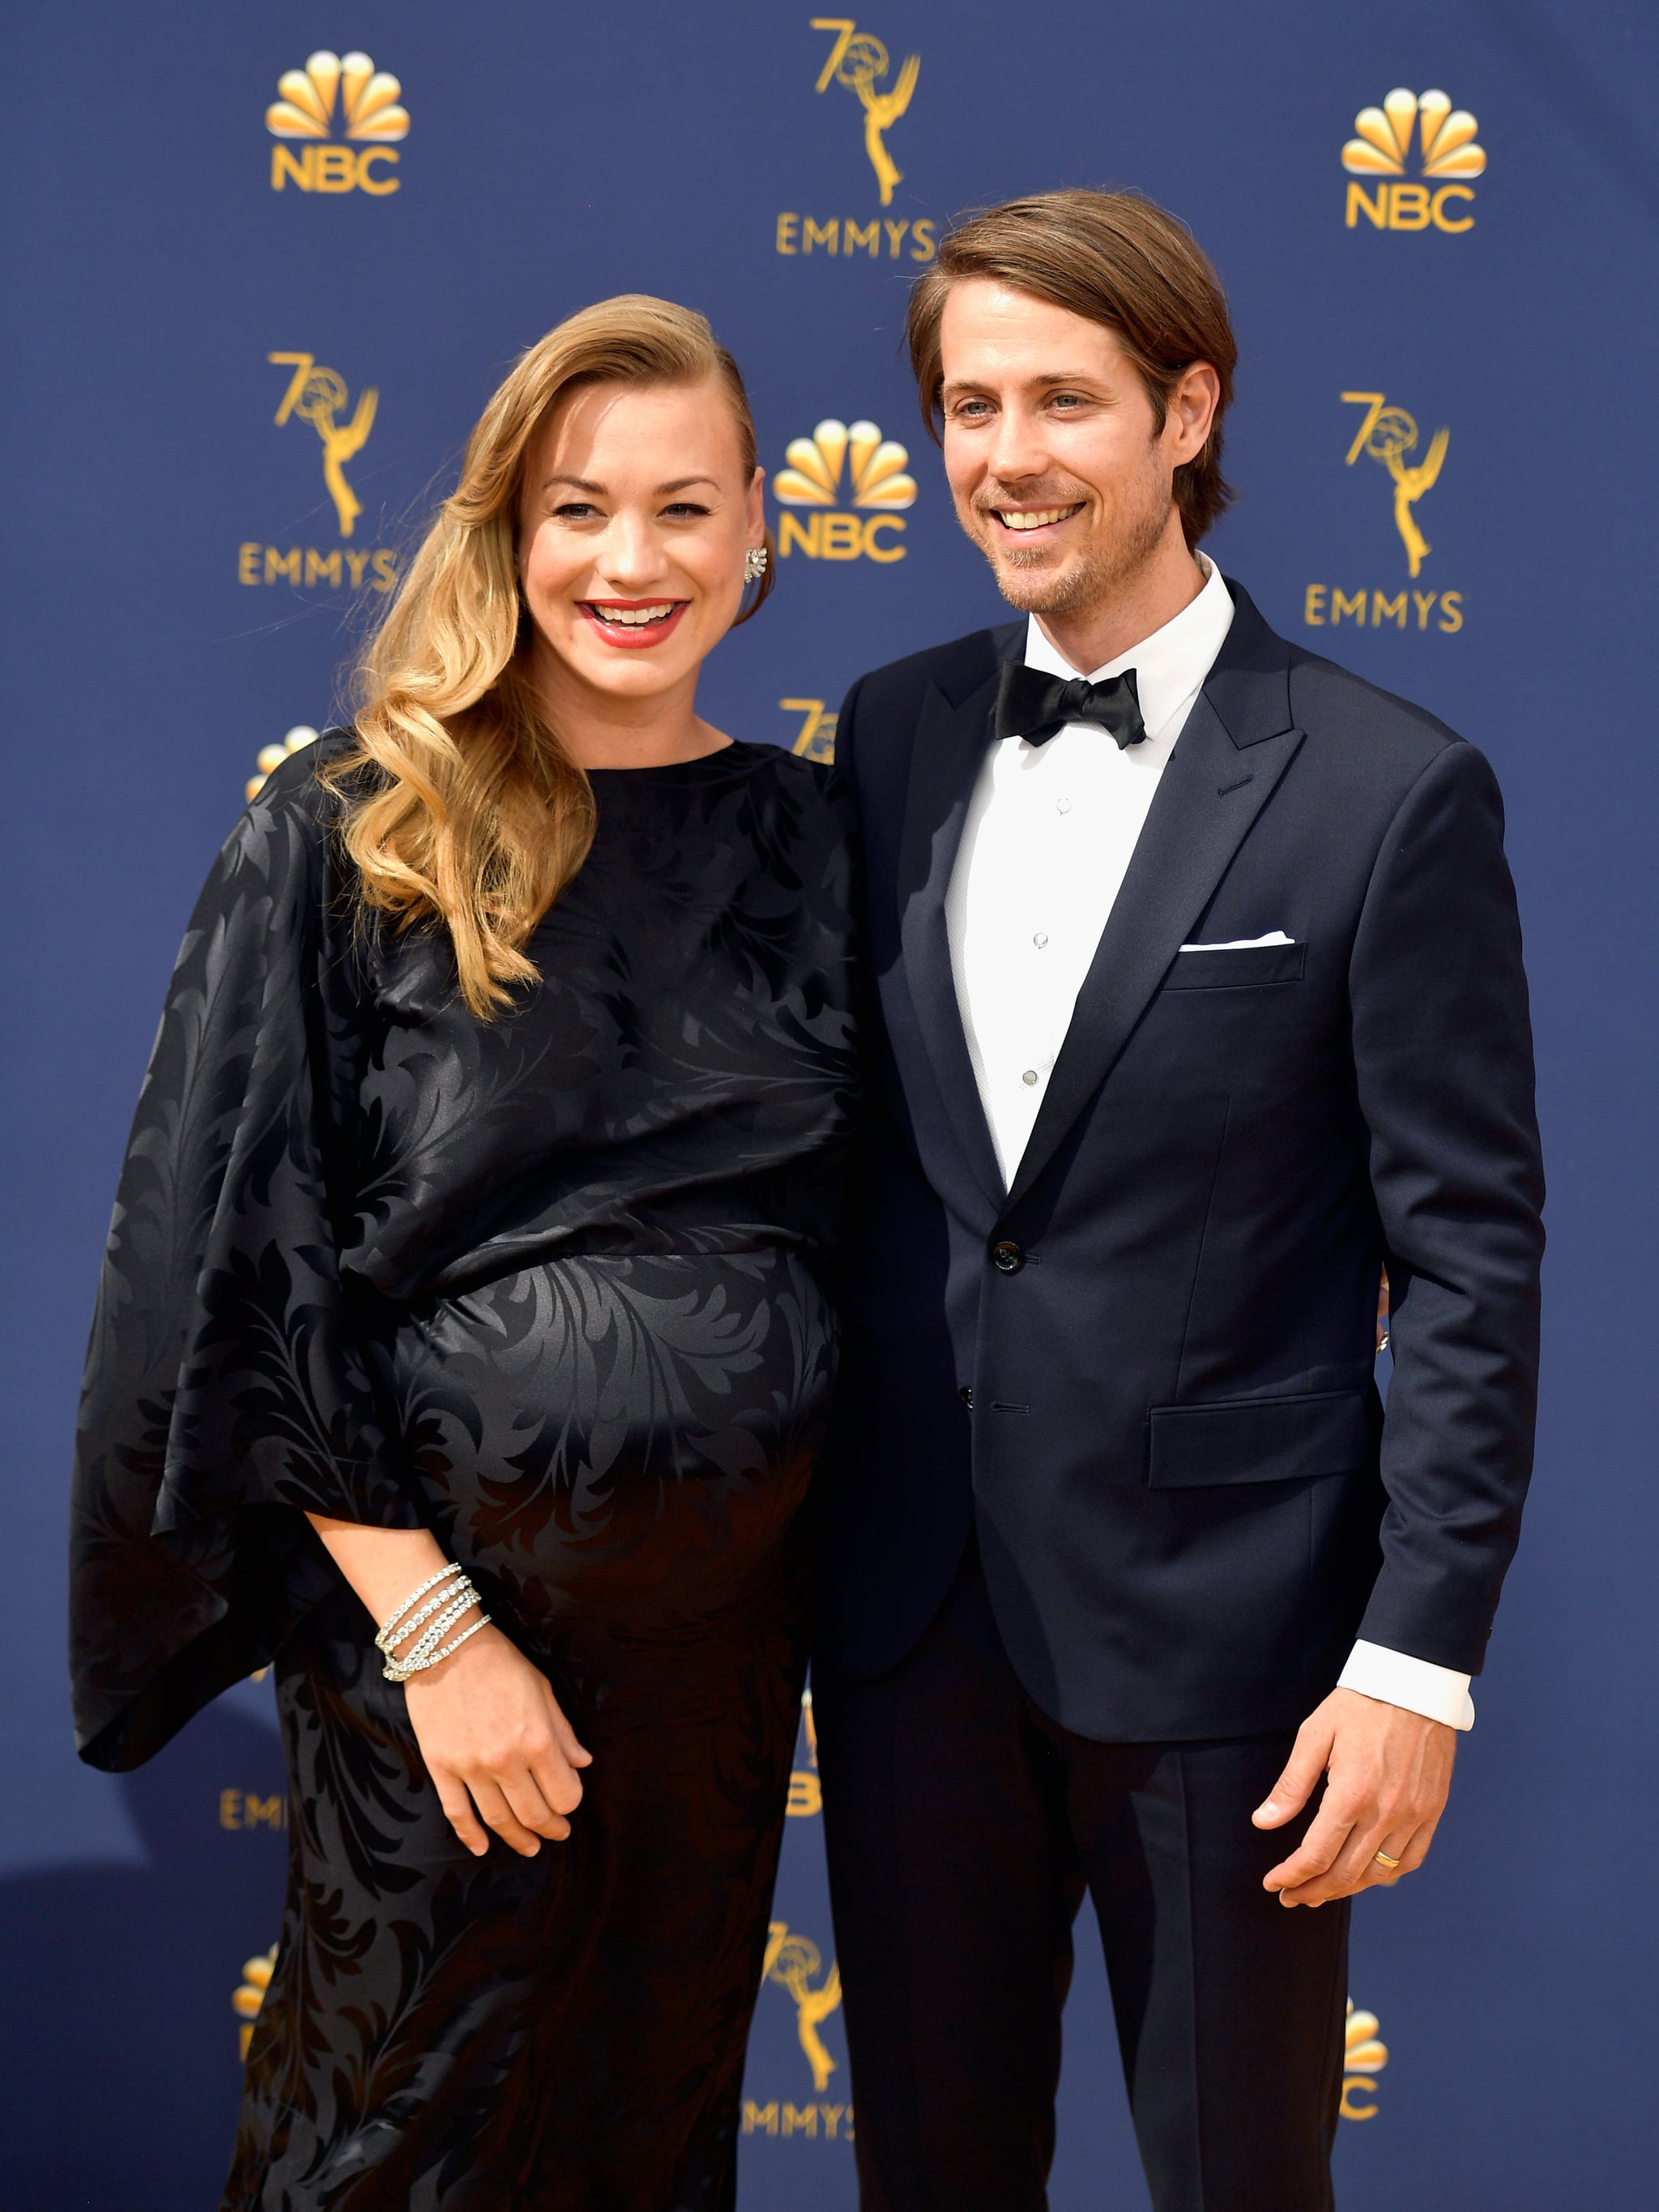 Yvonne Strahovski And Tim Loden These Celebrity Couples Showed Up And Showed Out At The Emmys Popsugar Celebrity Photo 11 The handmaid's tale star revealed that she tied the knot with longtime boyfriend tim loden on the red carpet at the 2017 emmys on stahovski, who has dated loden for more than six years, told e! yvonne strahovski and tim loden these